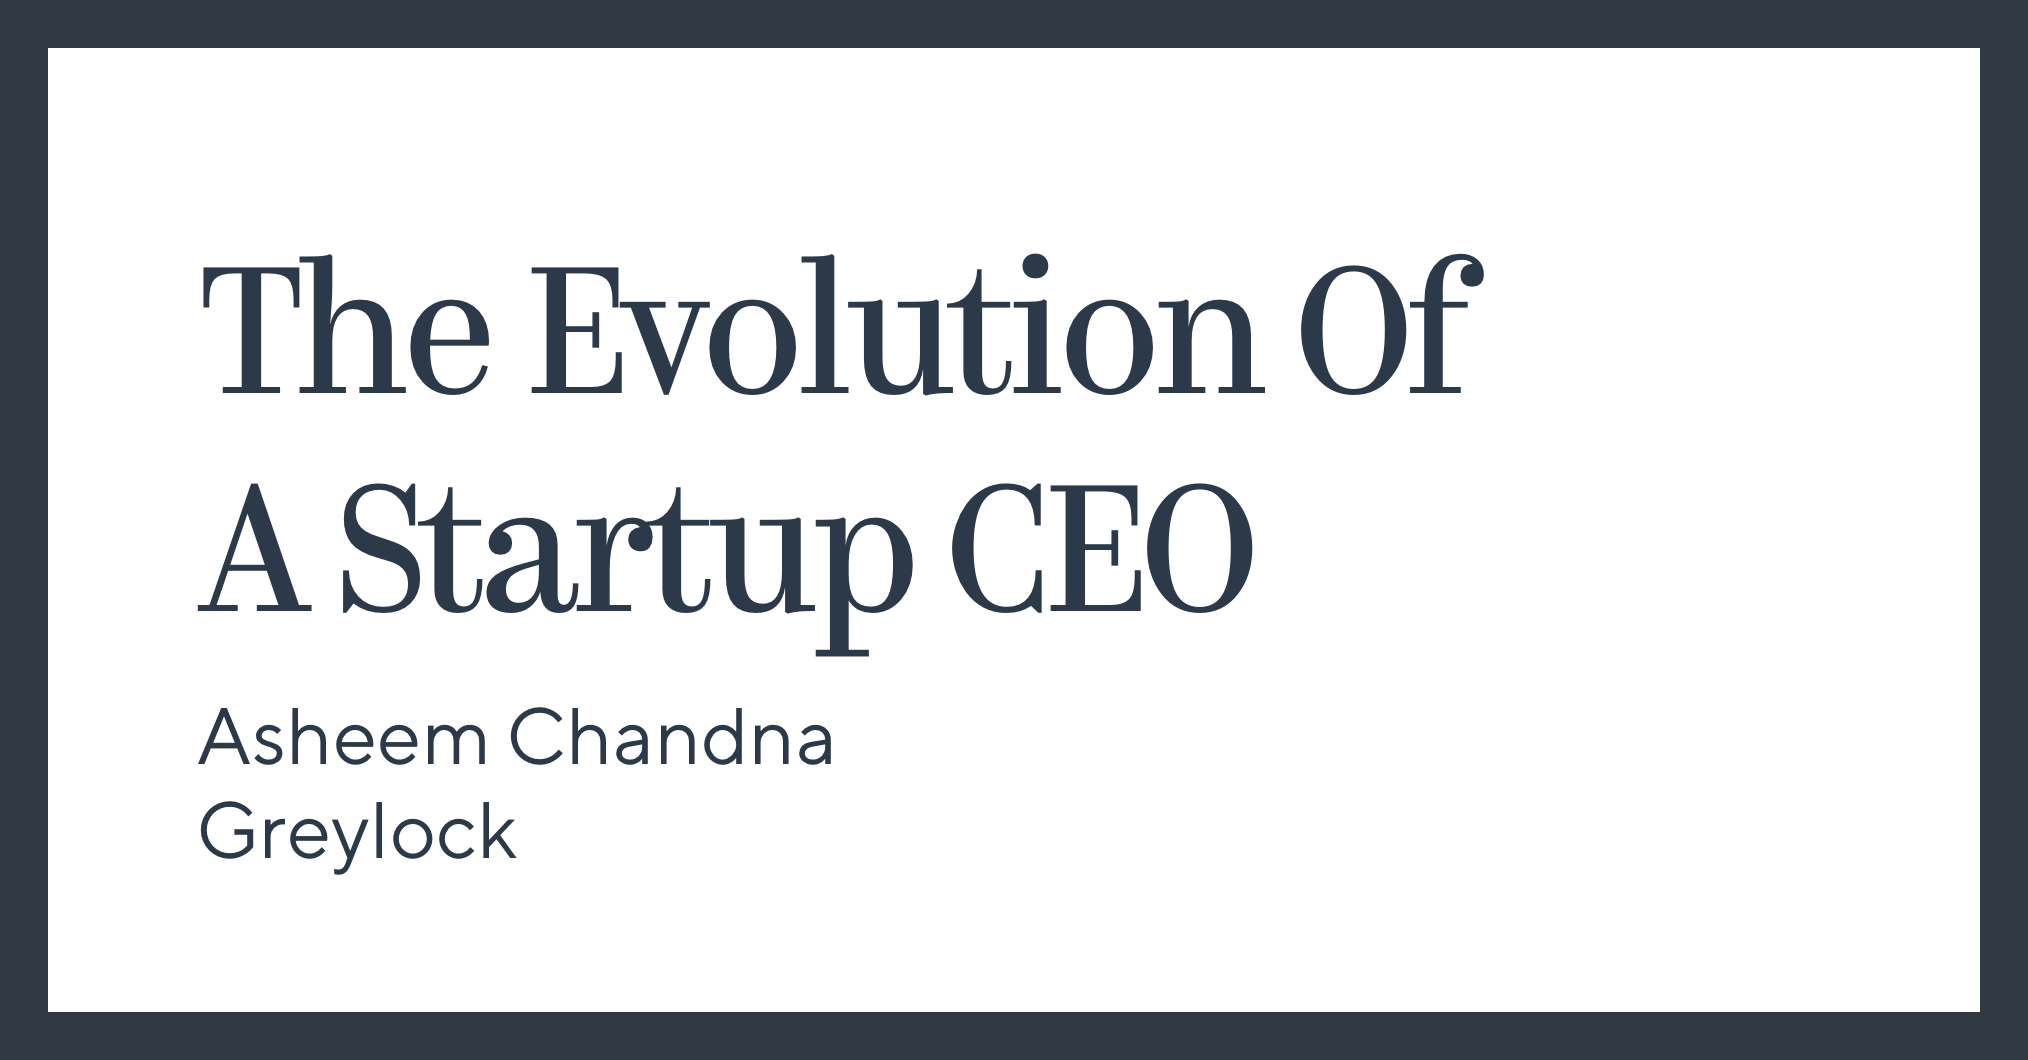 The Evolution Of A Startup CEO